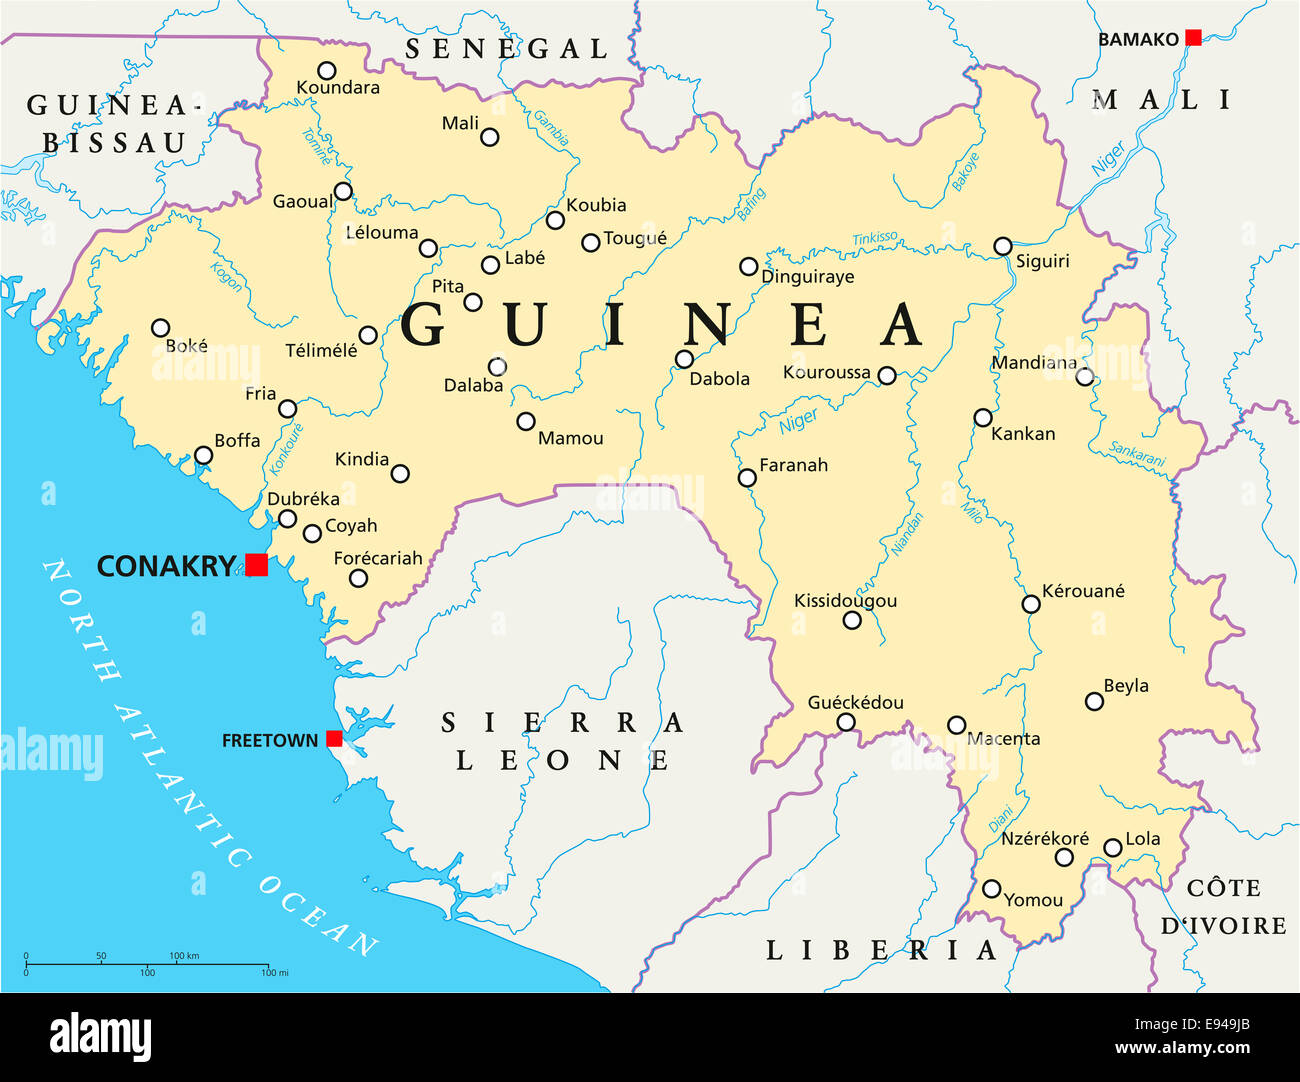 Guinea Political Map with capital Conakry national borders Stock